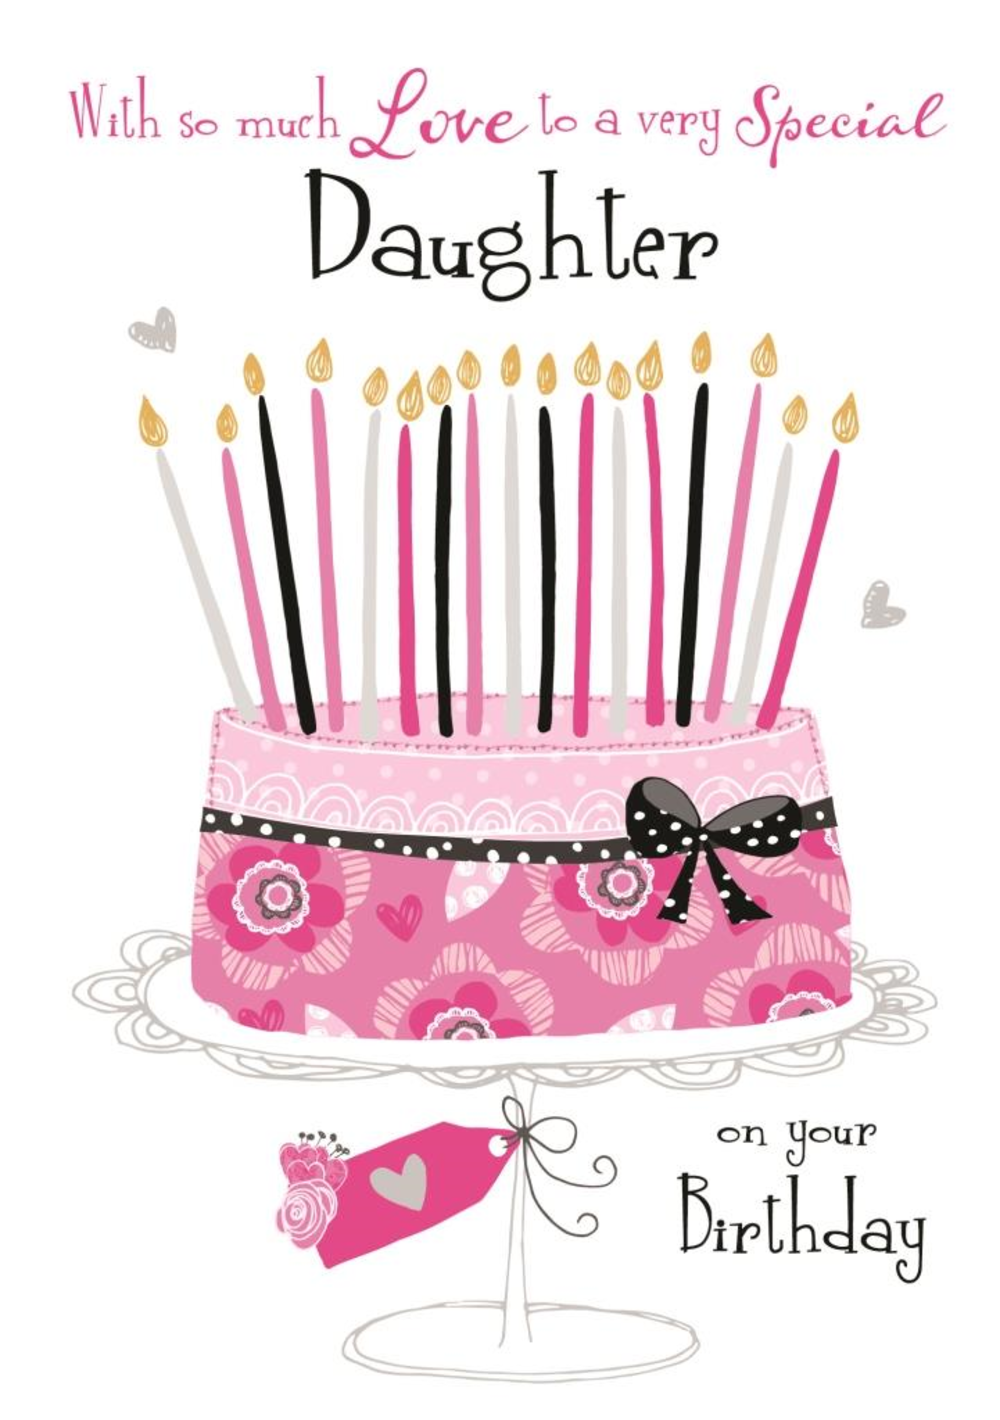 Special daughter birthday greeting card cards love kates special daughter birthday greeting card m4hsunfo